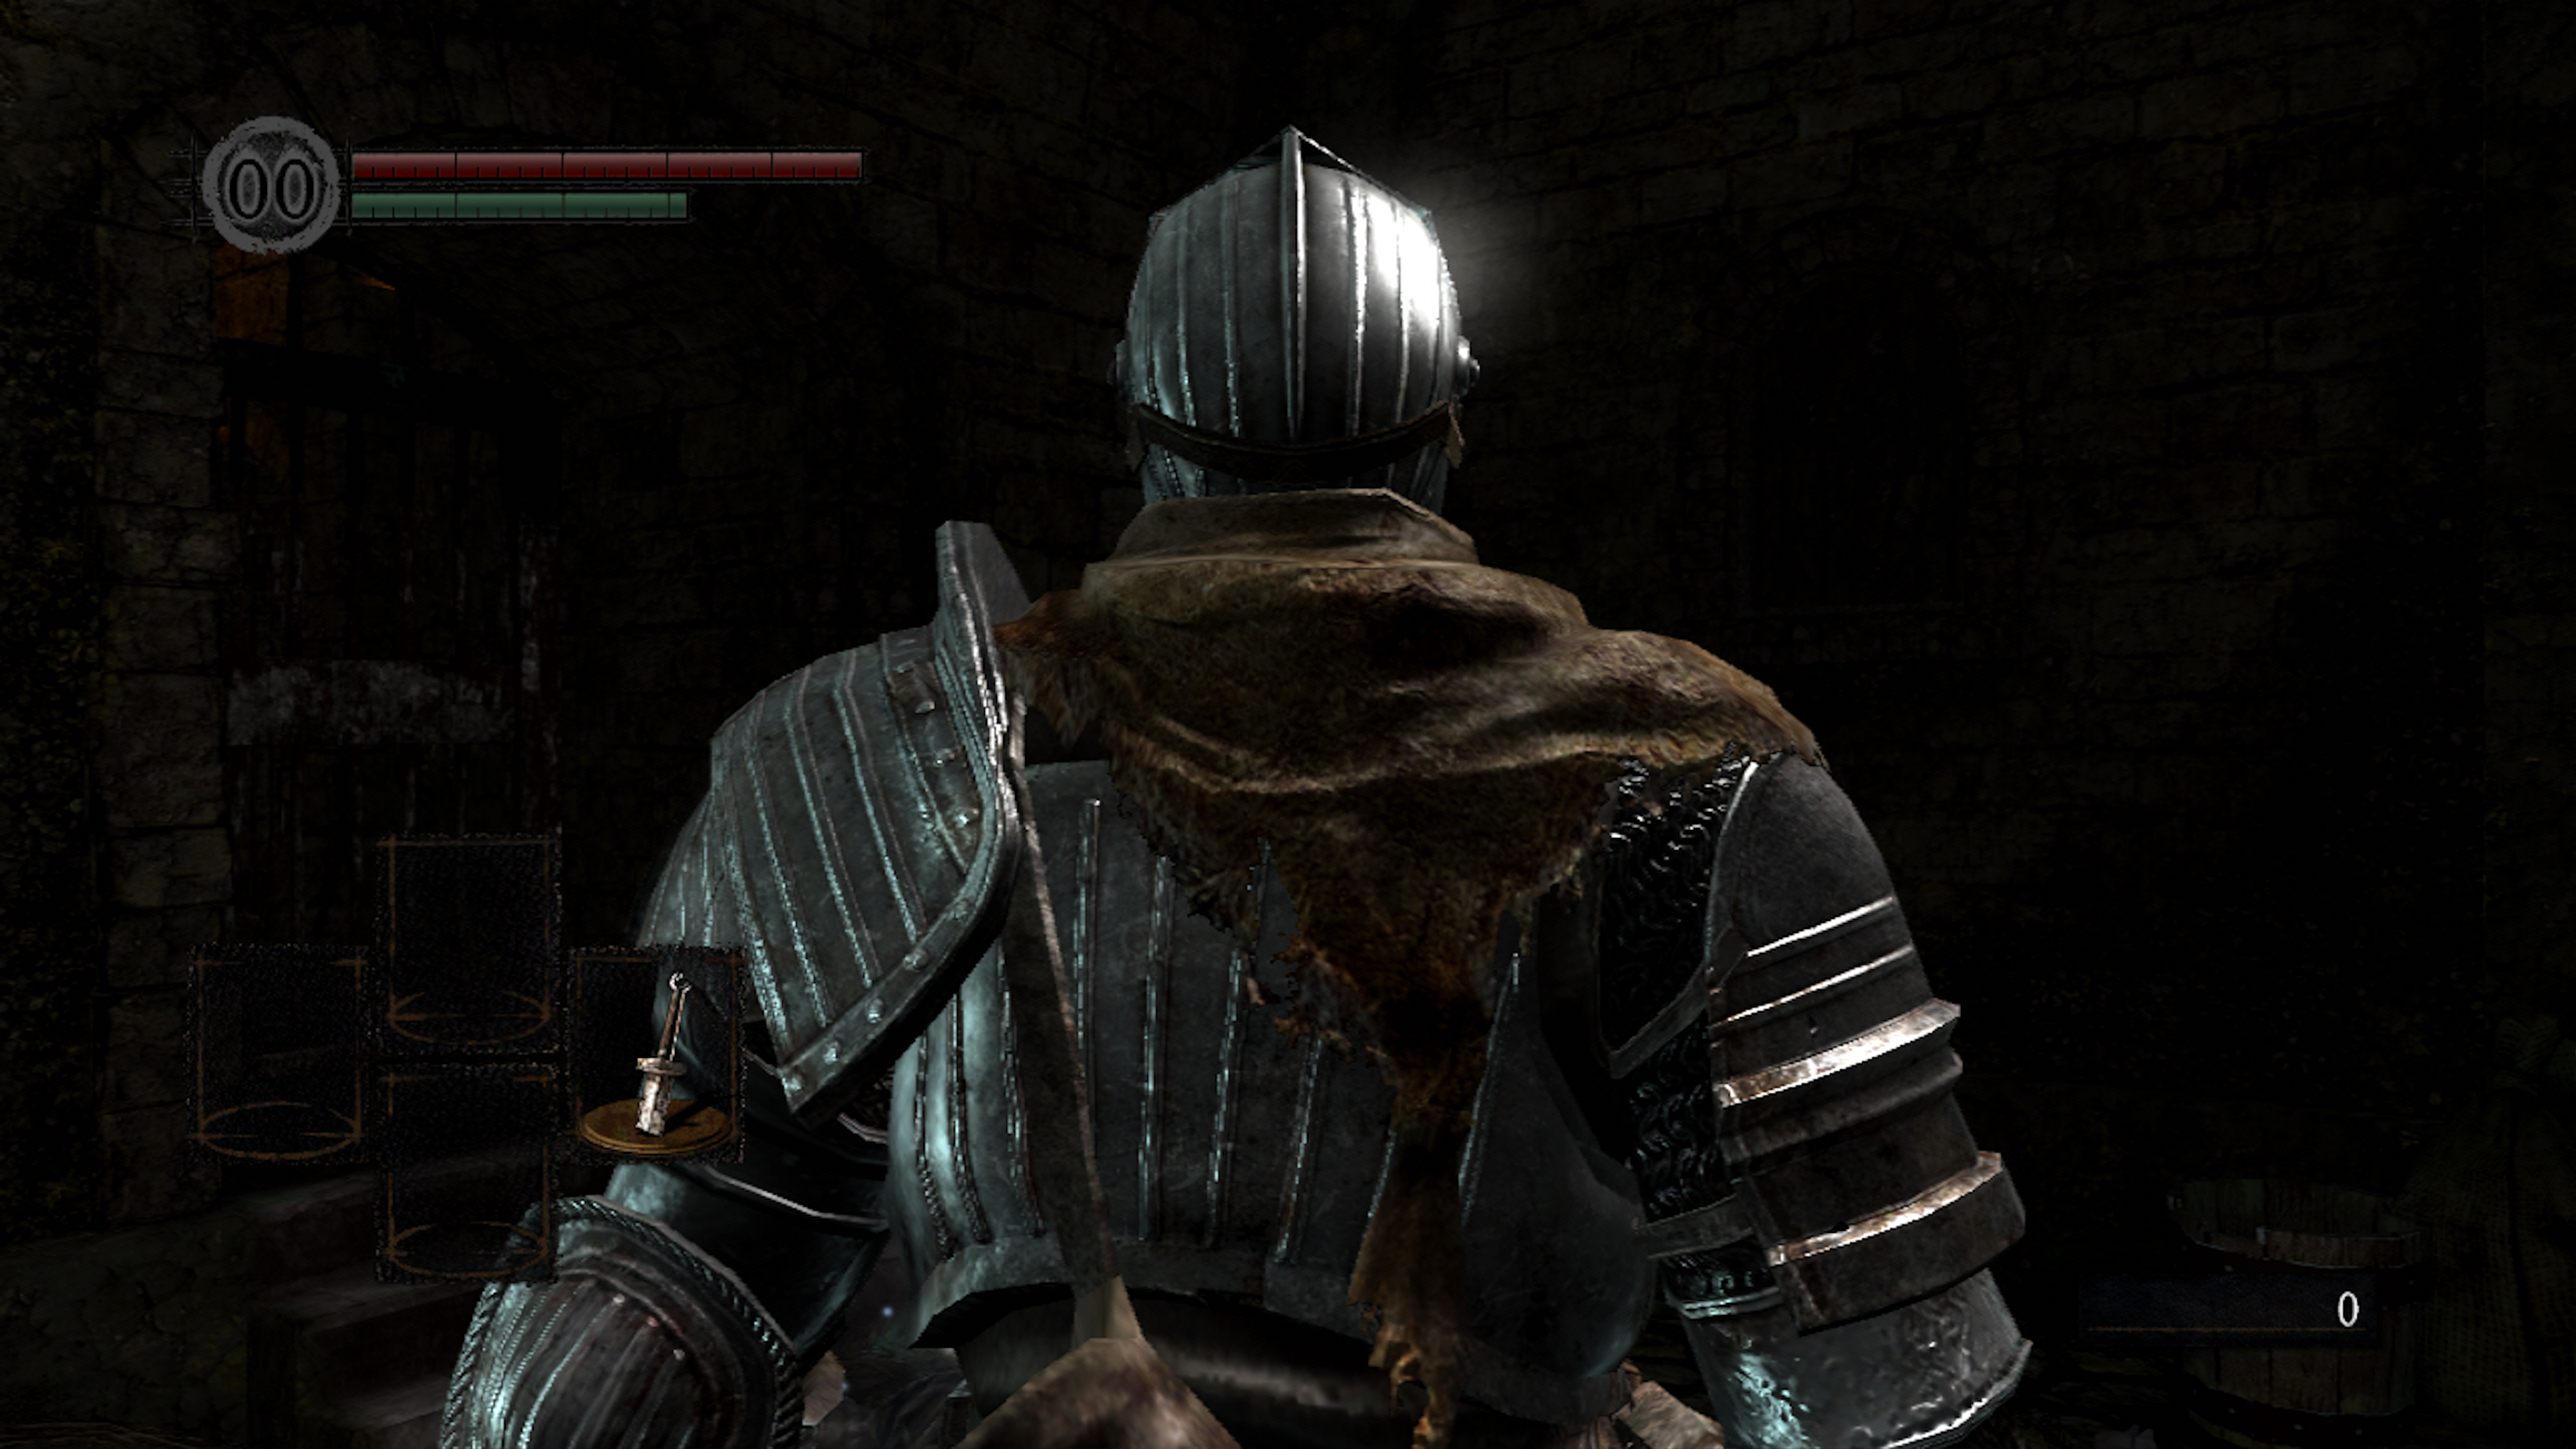 Dark Souls Remastered How Much Of An Upgrade Is It Lock Ampamp Ordinary Crisper Hpl932d700ml Lighting Across This Knights Armour Altered With A Cleaner Result On The Material Looks Sharper And More Pristine But Some Originals